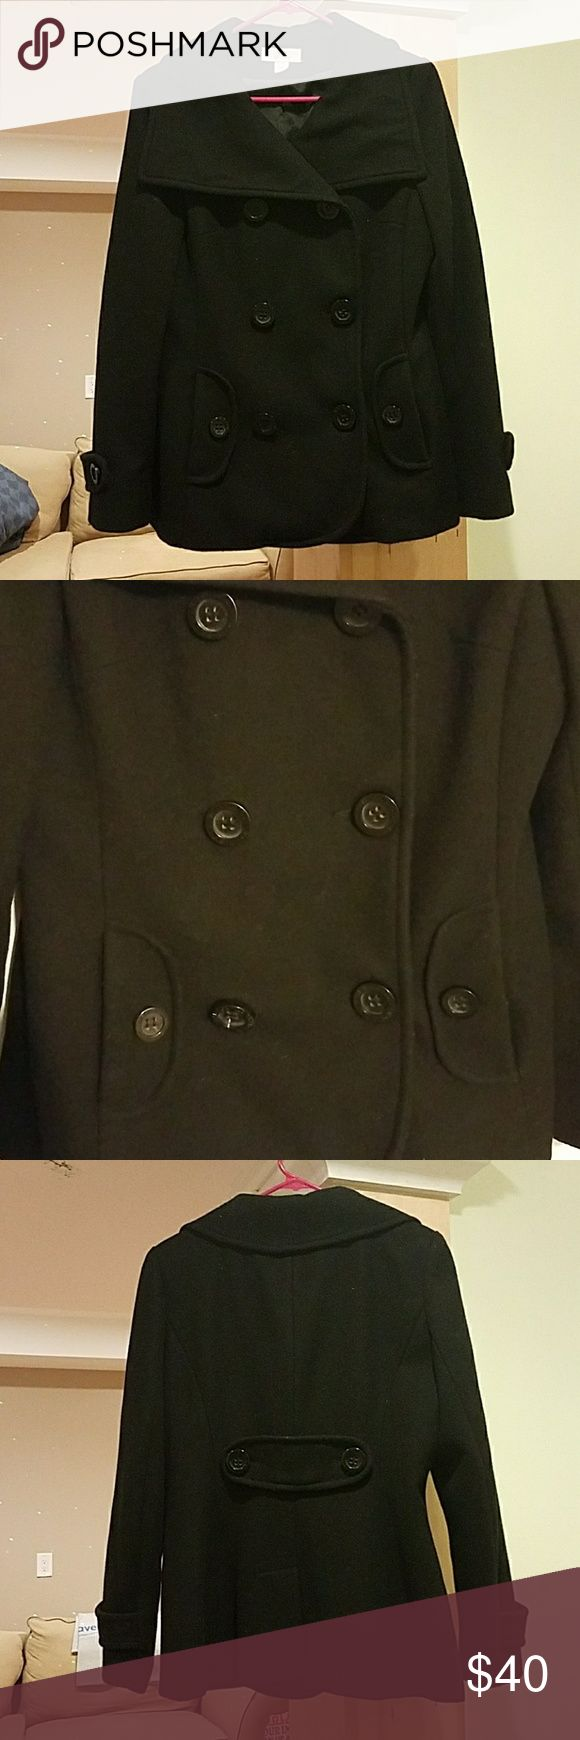 Barely Worn J-LO Wool Coat!!! Super Cute and super warm J-LO Wool coat. Only worn handful of times! I live in the deep south and don't have much use for a coat like this. Jennifer Lopez Jackets & Coats Pea Coats